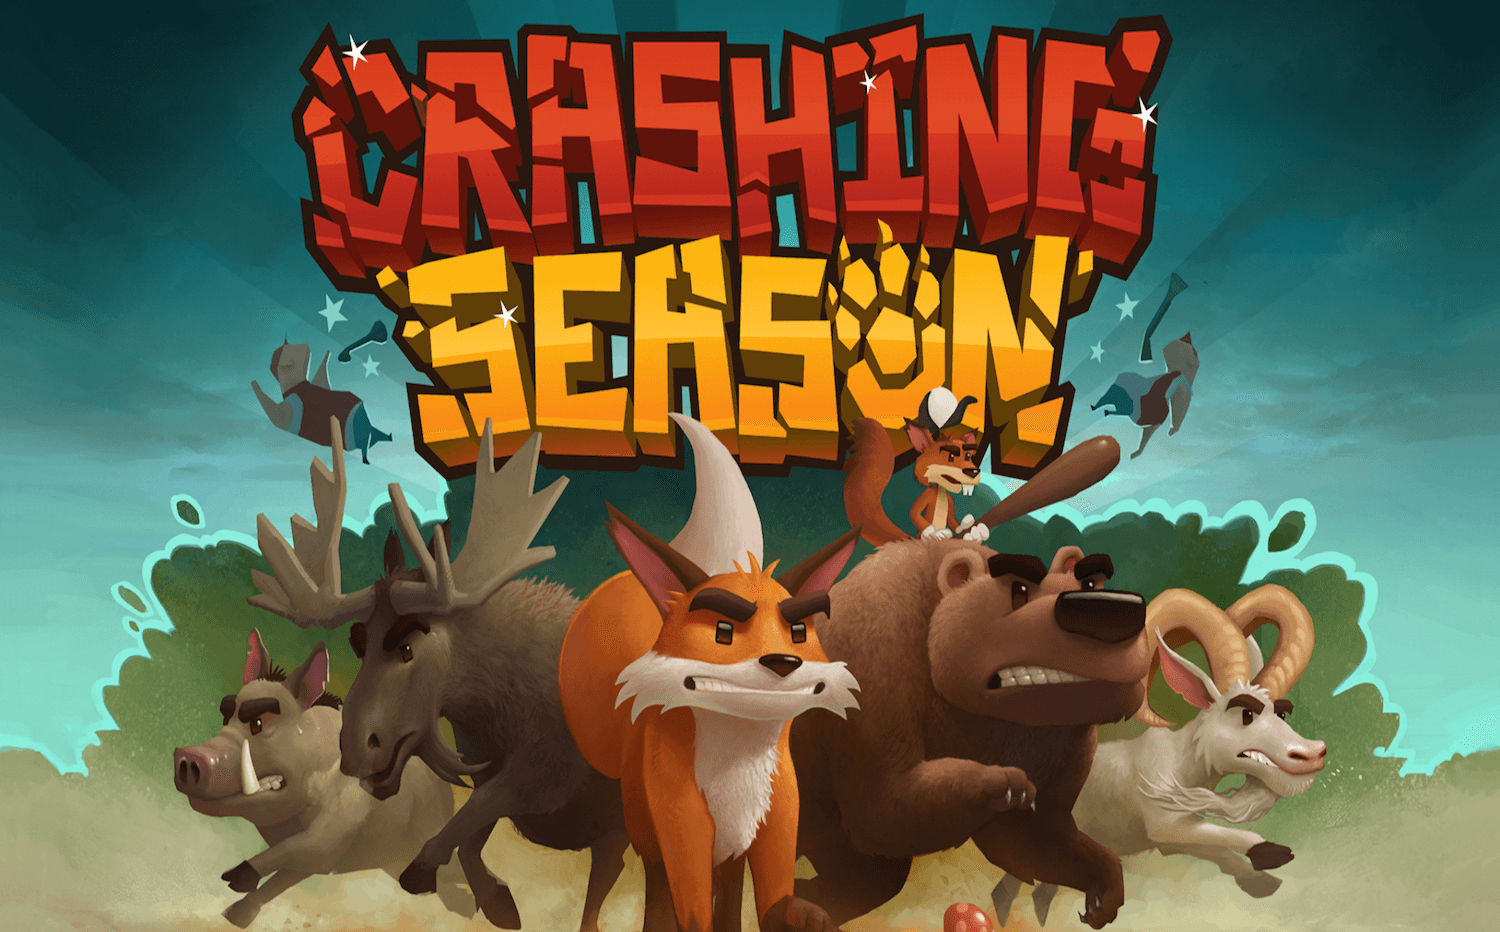 Crashing_Season_1